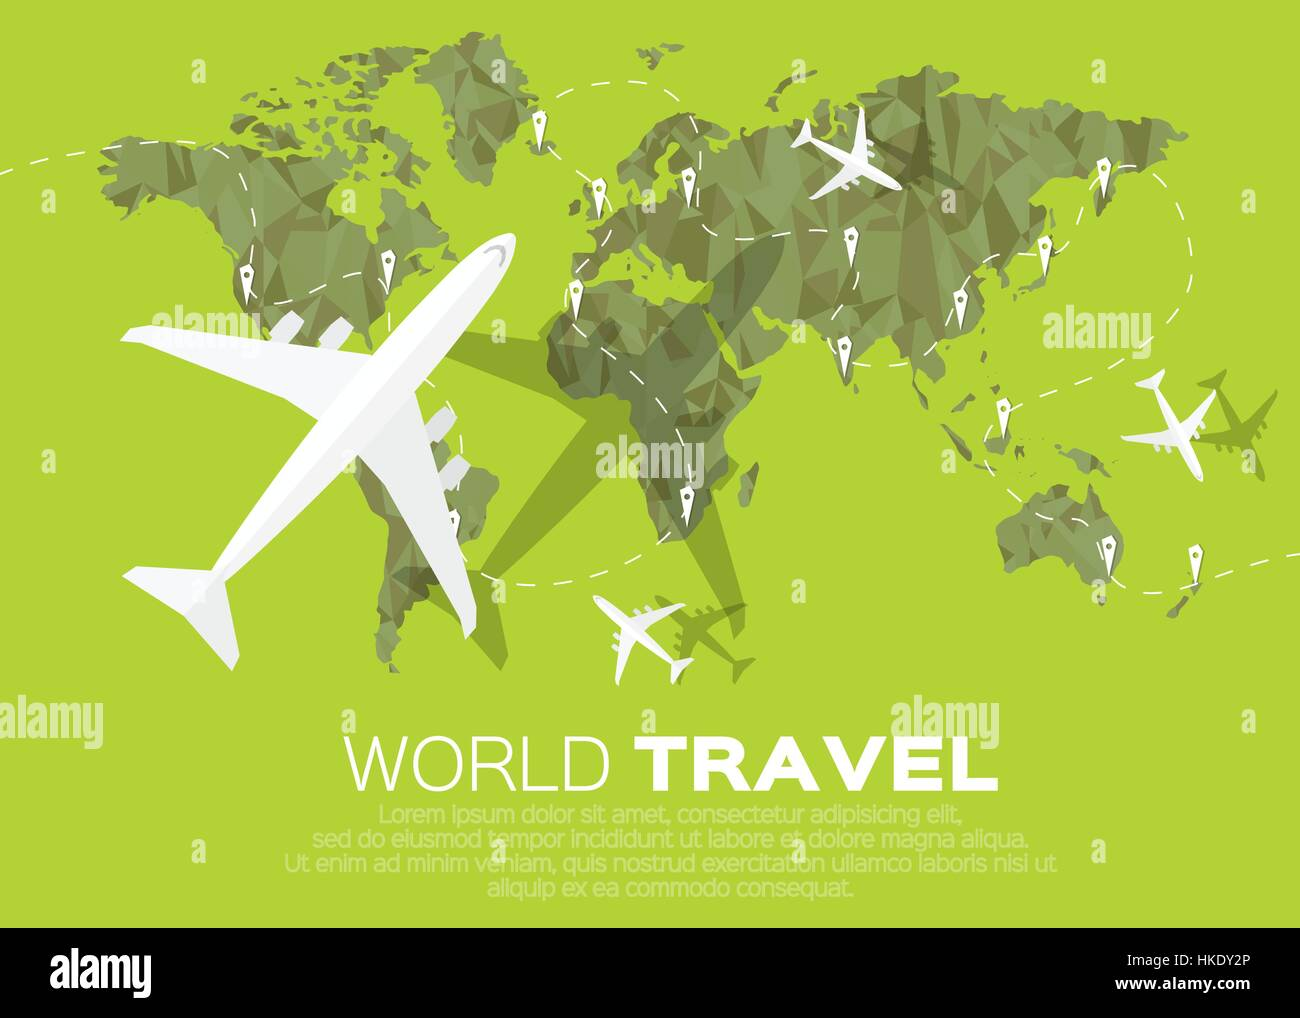 Travel world map background in polygonal style with top view stock travel world map background in polygonal style with top view airplane vector illustration design gumiabroncs Choice Image